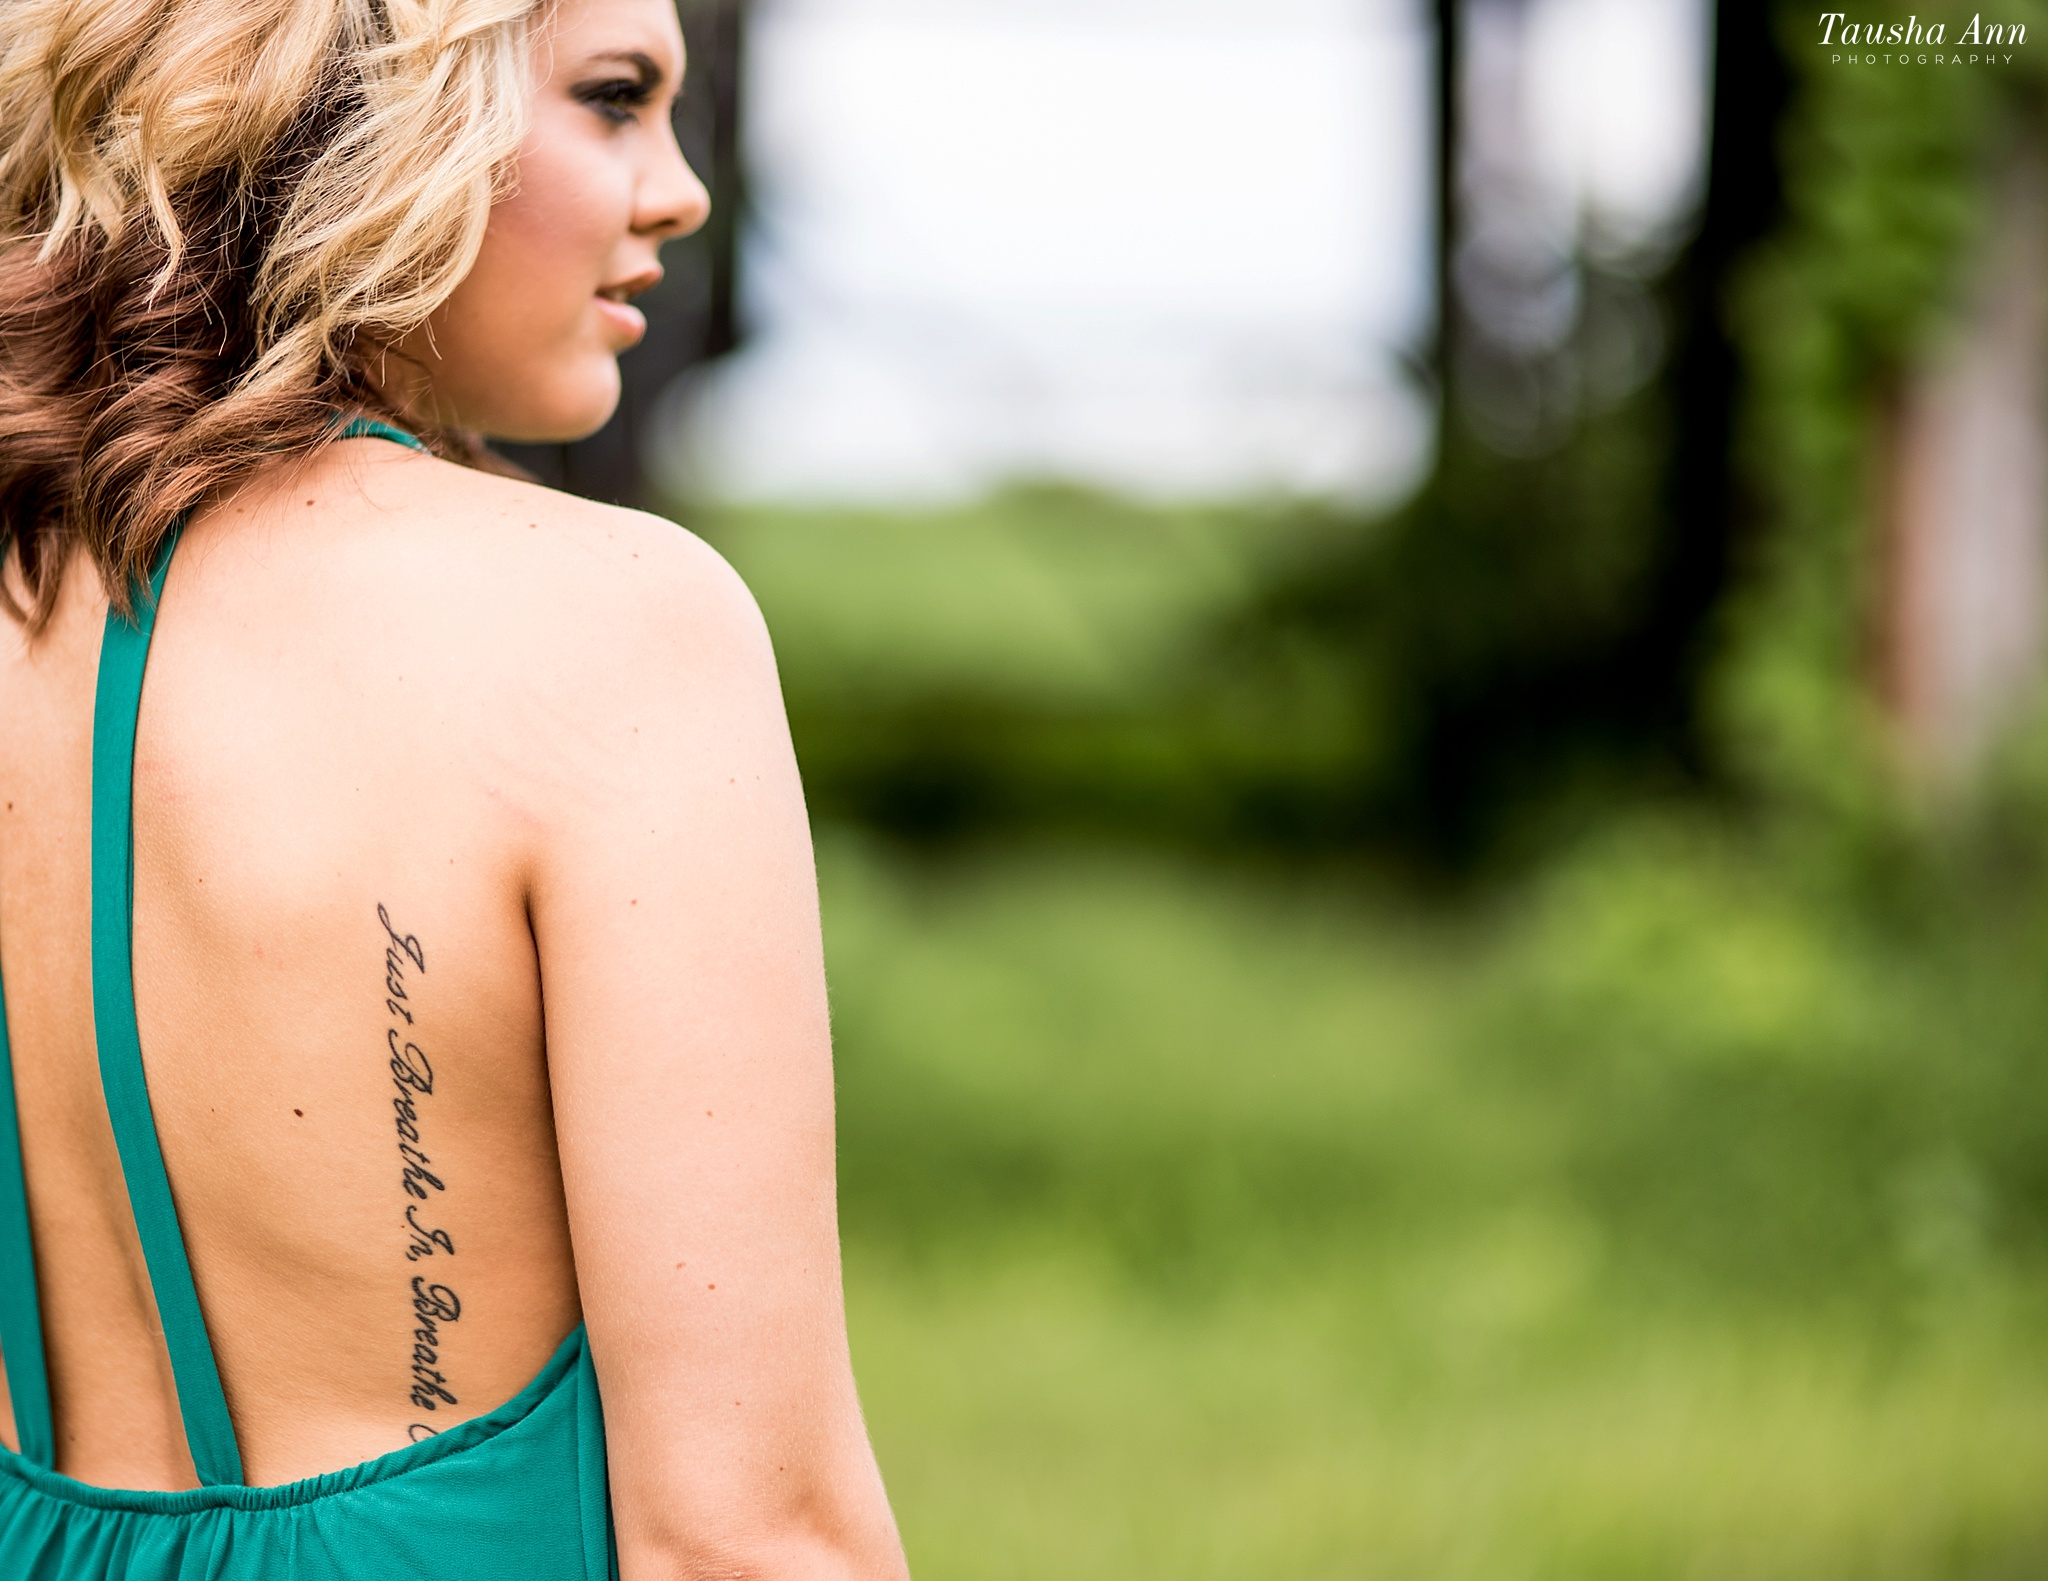 Nashville-Family-Photographer-Adams-TN-Farm-Shadrick-tausha-ann-photography-tattoo-on-back-0080